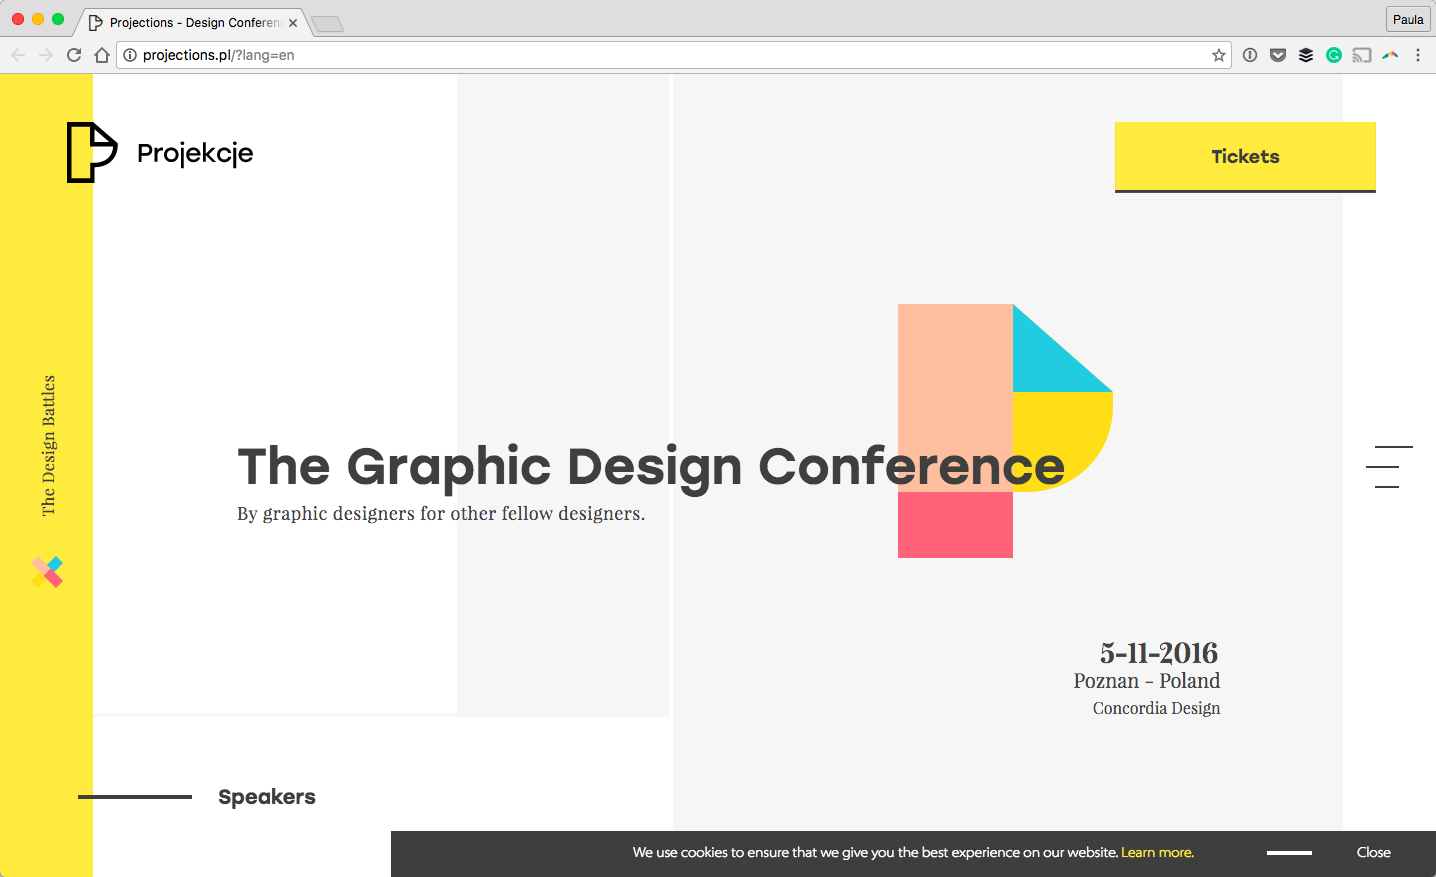 projections-design-conference-poznan-poland-2016-09-30-21-28-00